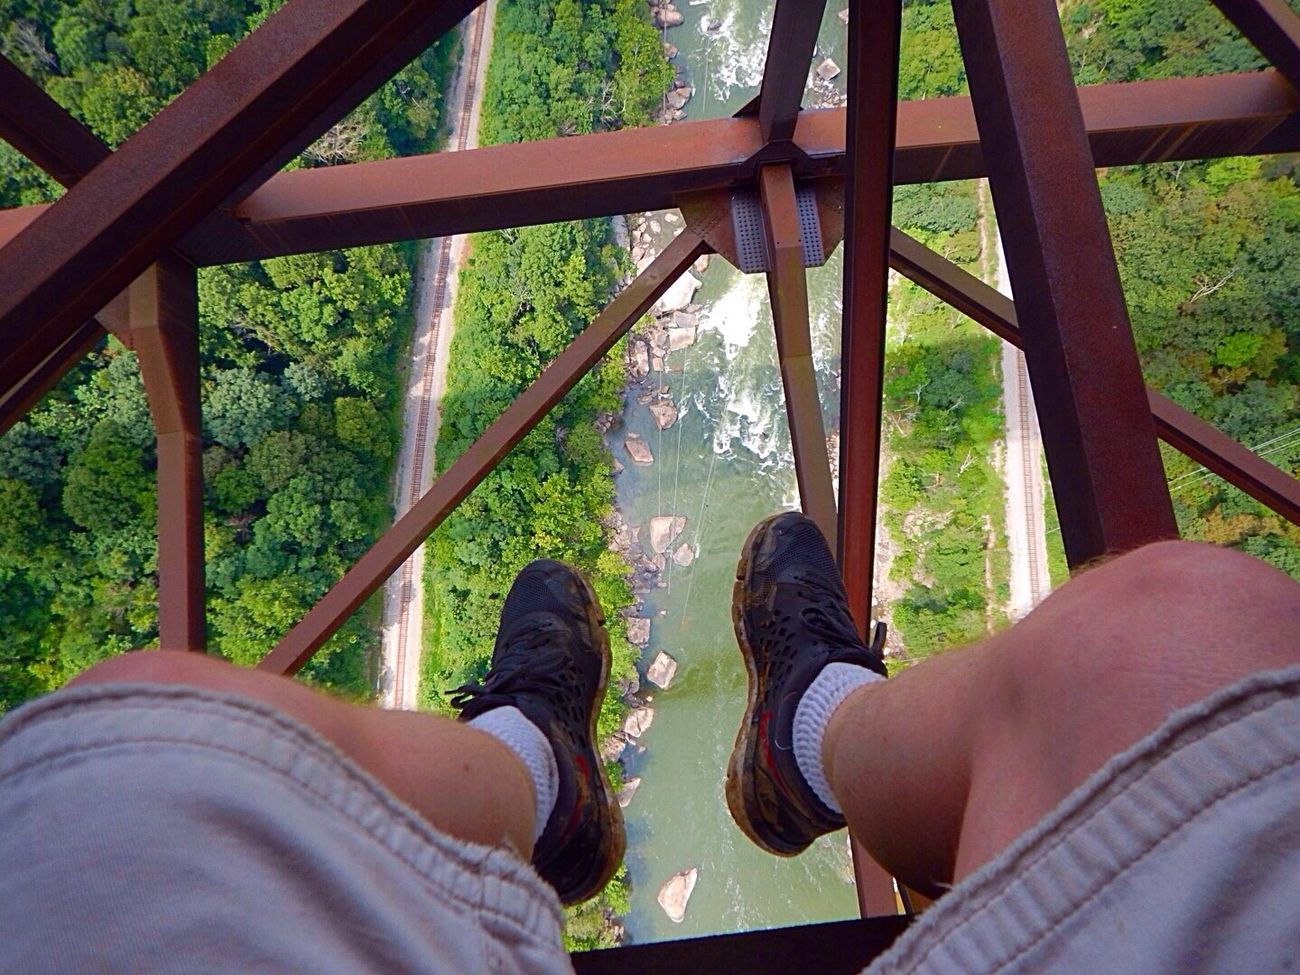 There's nothing like a relaxing afternoon sitting on an 1/8 inch piece of sheet metal 876 feet above the river below lol. West Virginia Adventure Bridge Way Too High Yikes!